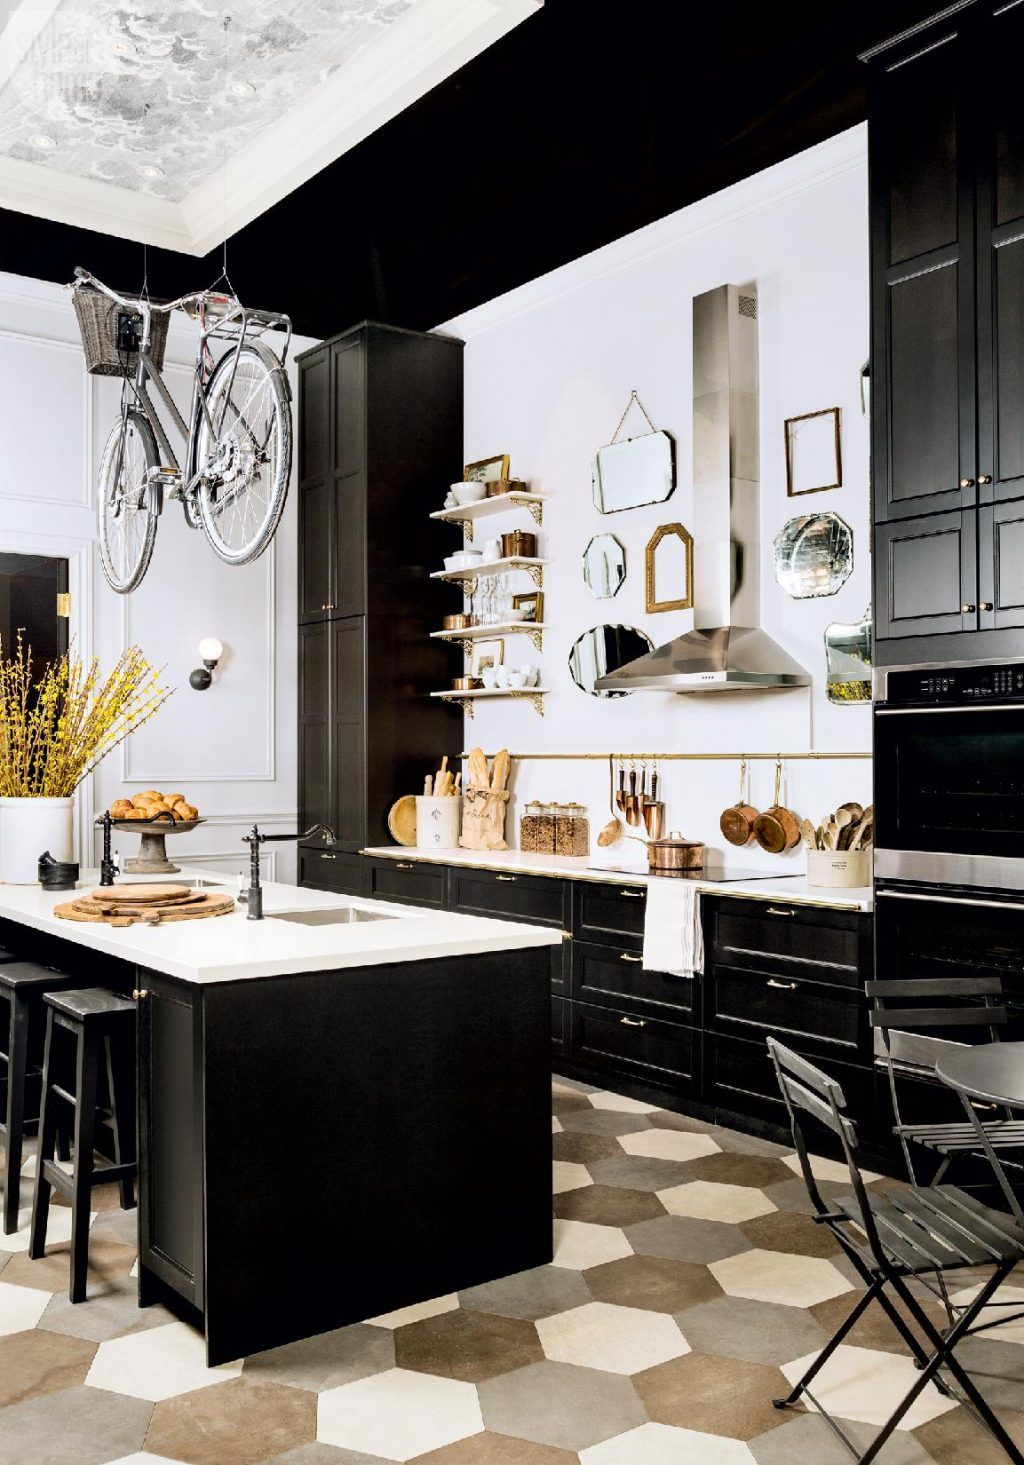 Paris Bistro Kitchen Style Black White Kitchen Classic Kitchen Design White Kitchen Remodeling Kitchen Remodel Small